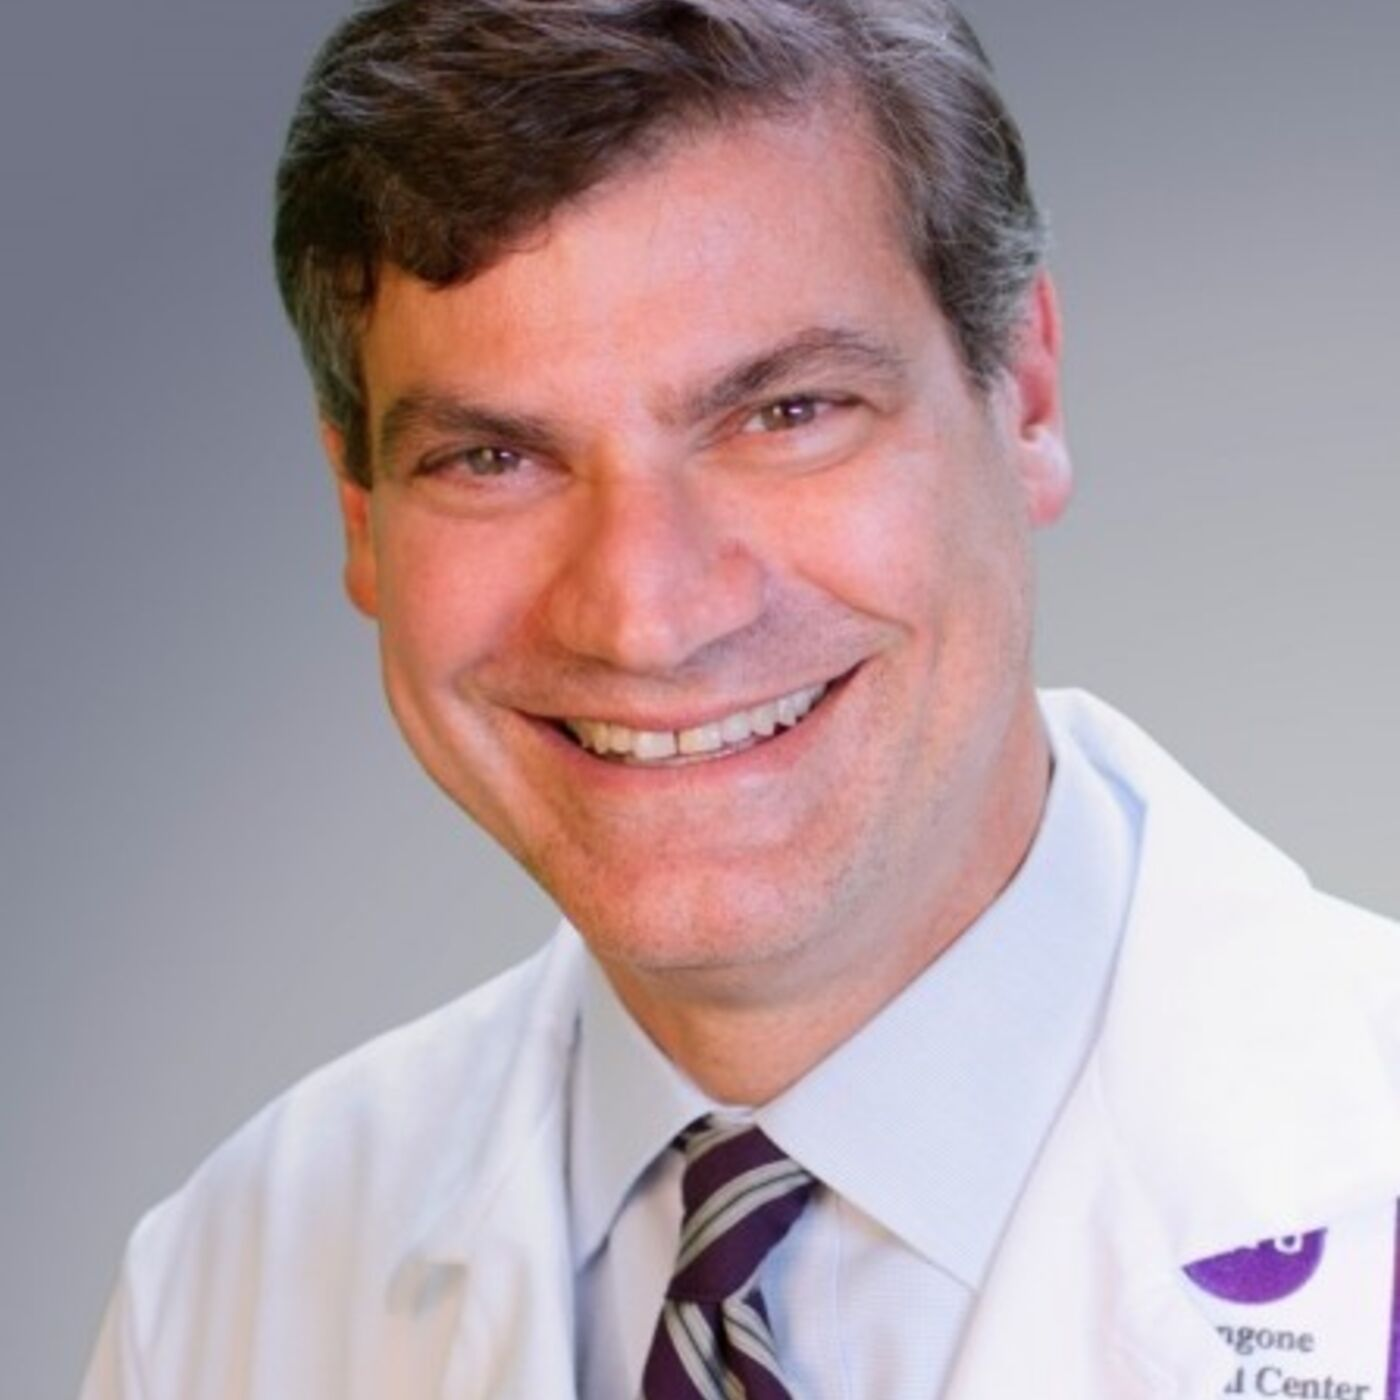 GI, AI and Pearls for Interns with Mark Pochapin, MD, FACP, FACG